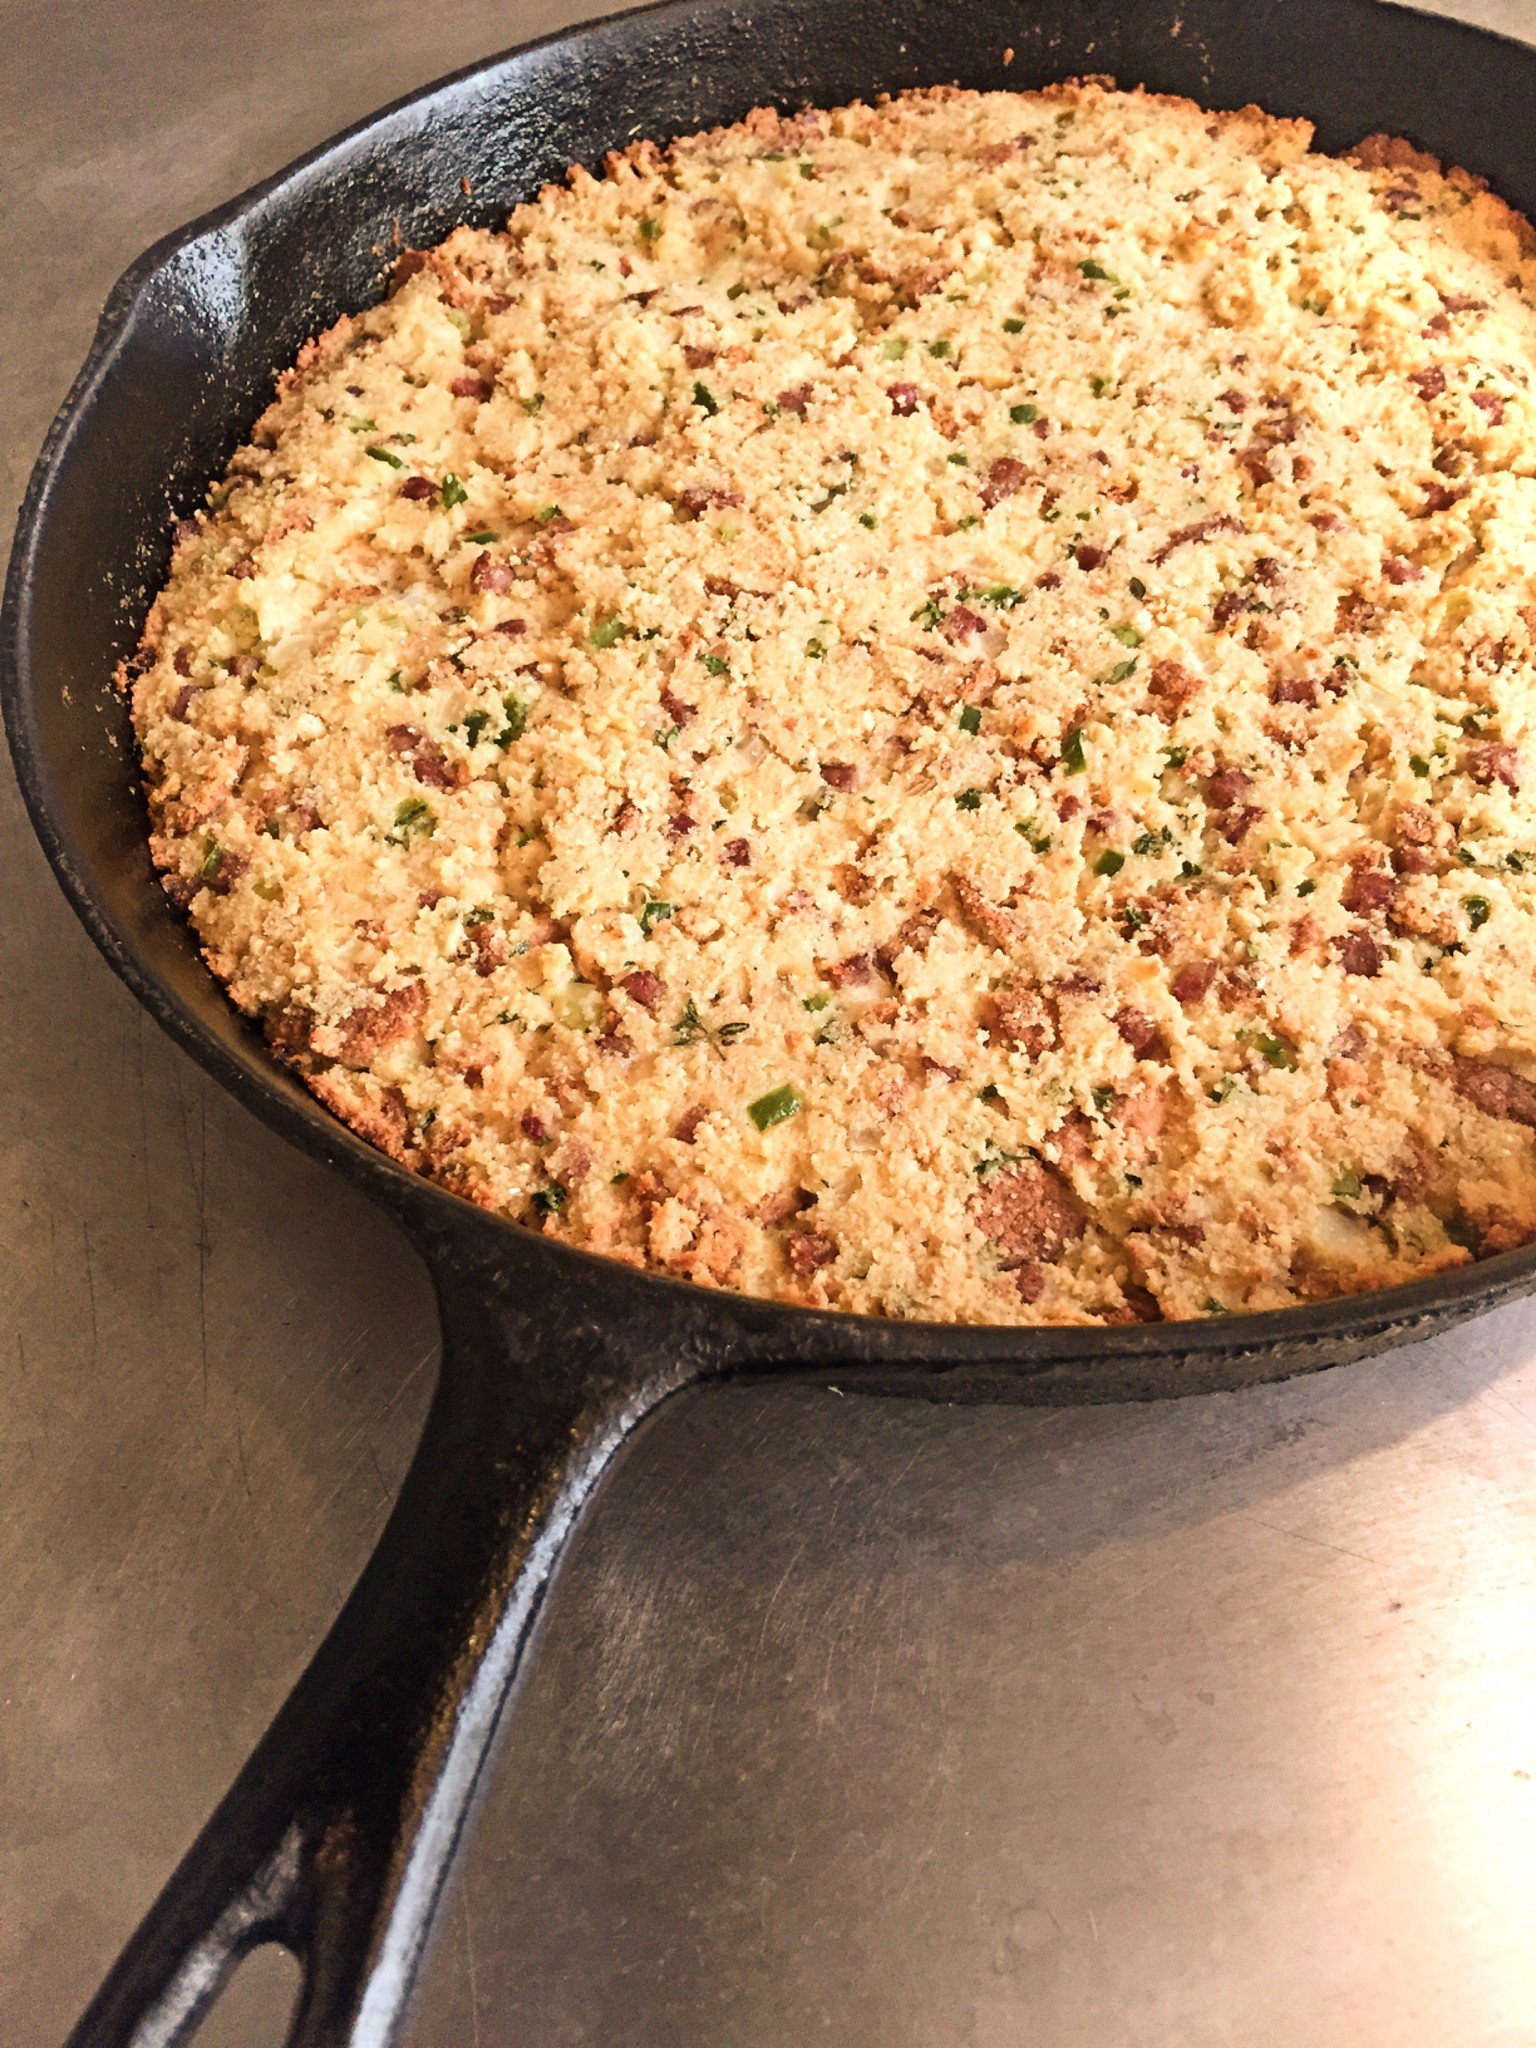 A skillet of Jim Smith's Oyster and Sausage Dressing.